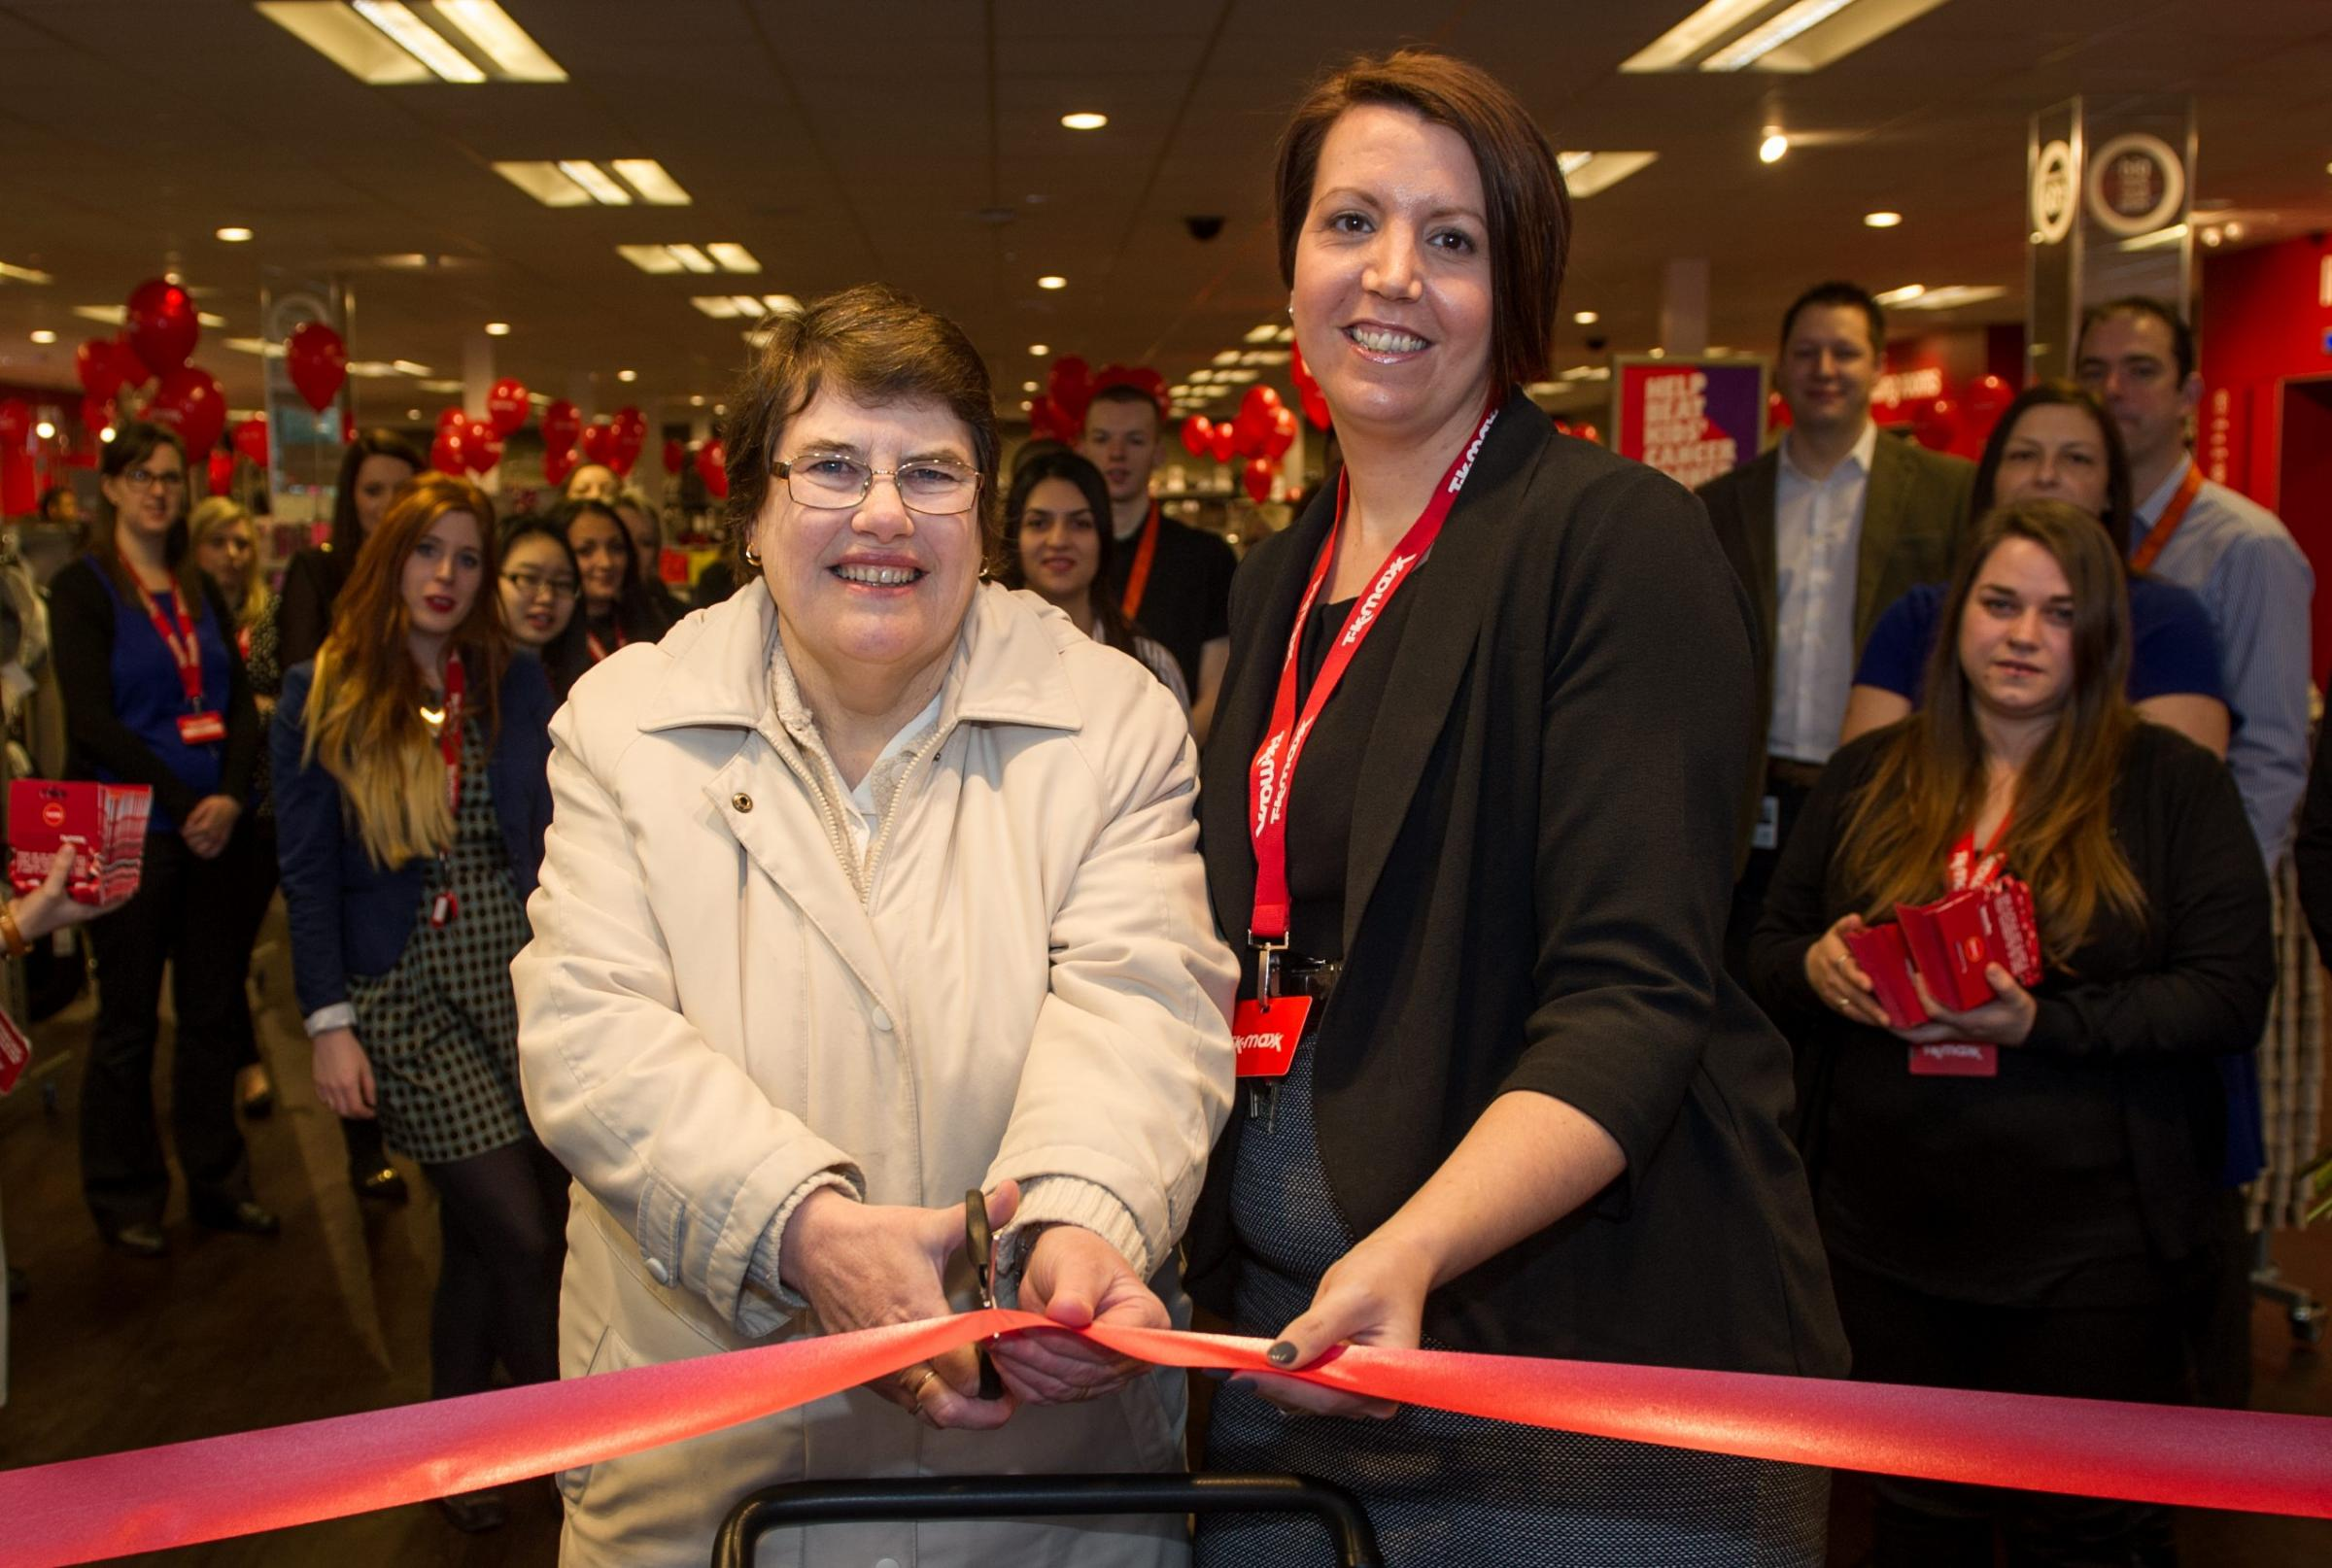 Hundreds queue for opening on TK Maxx store in Hove